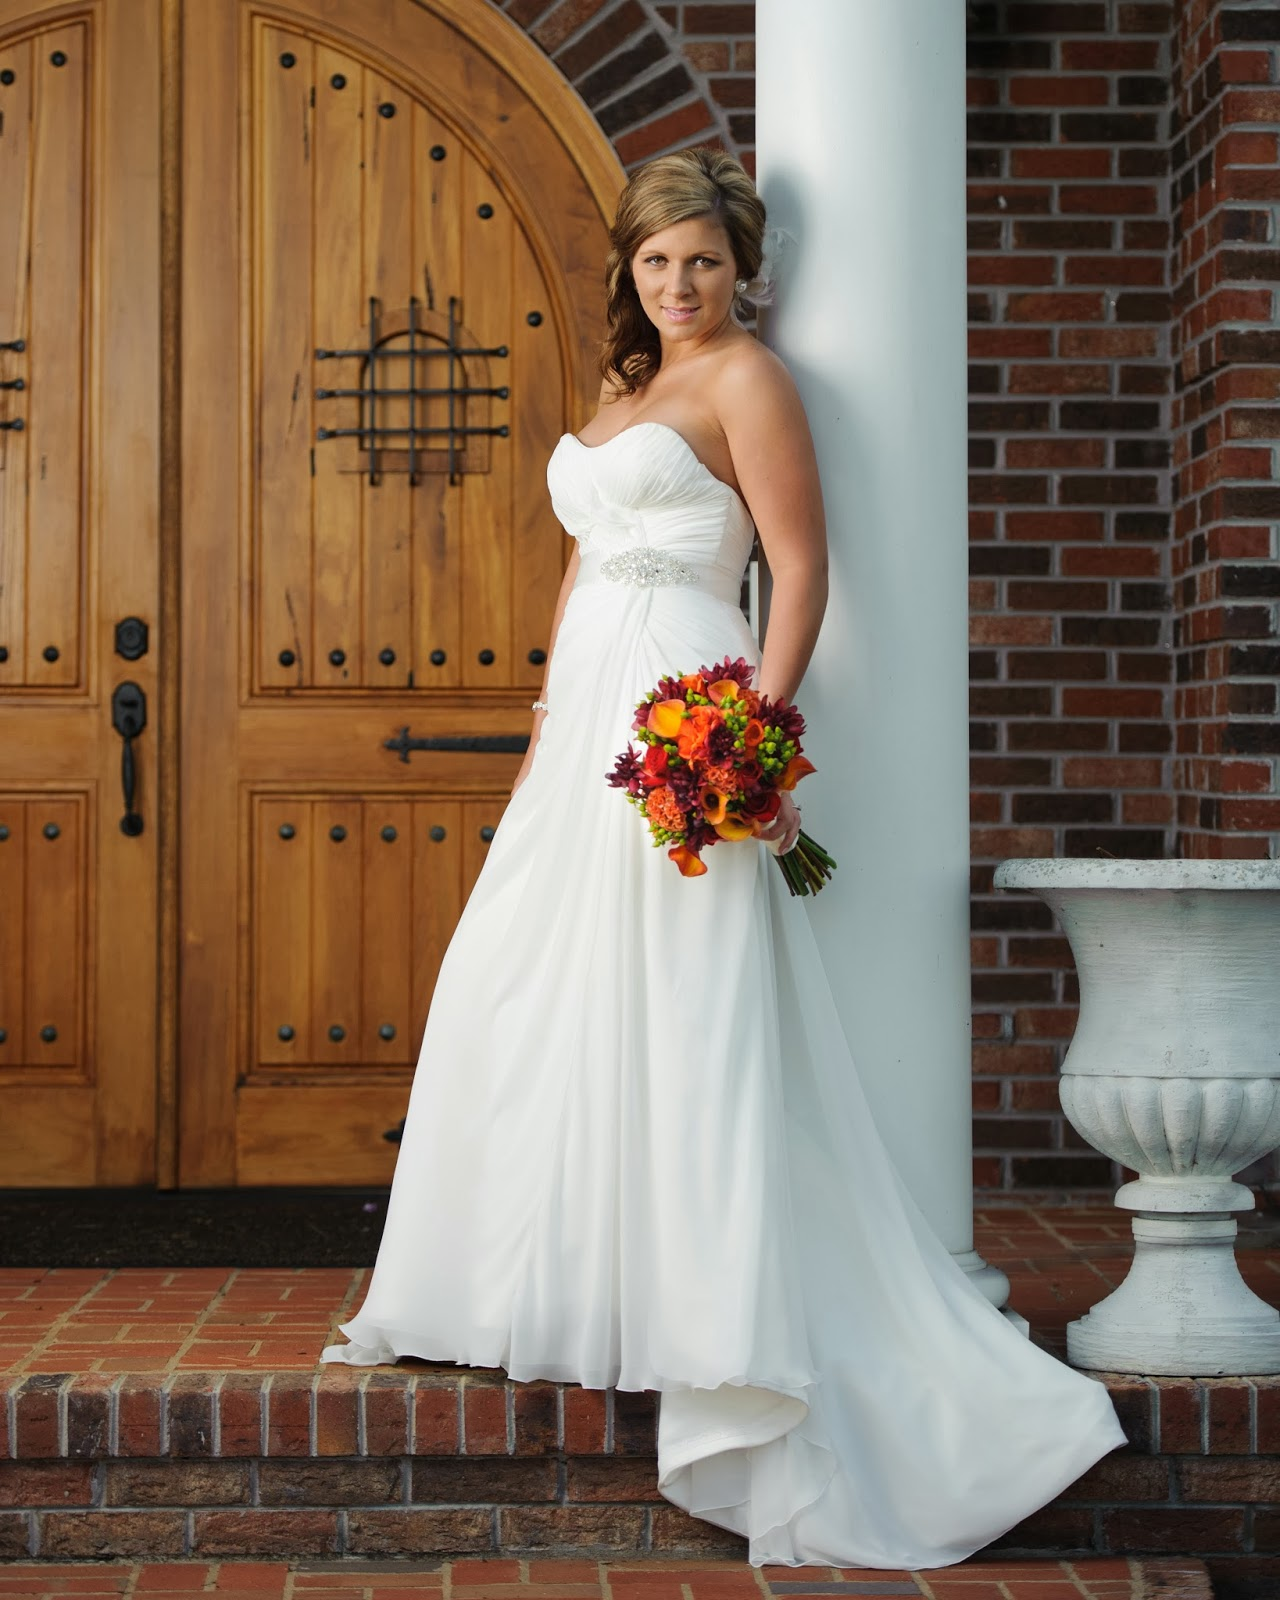 Cable Photography & Video: Kristen Blevins - Wedding - Engagement ...